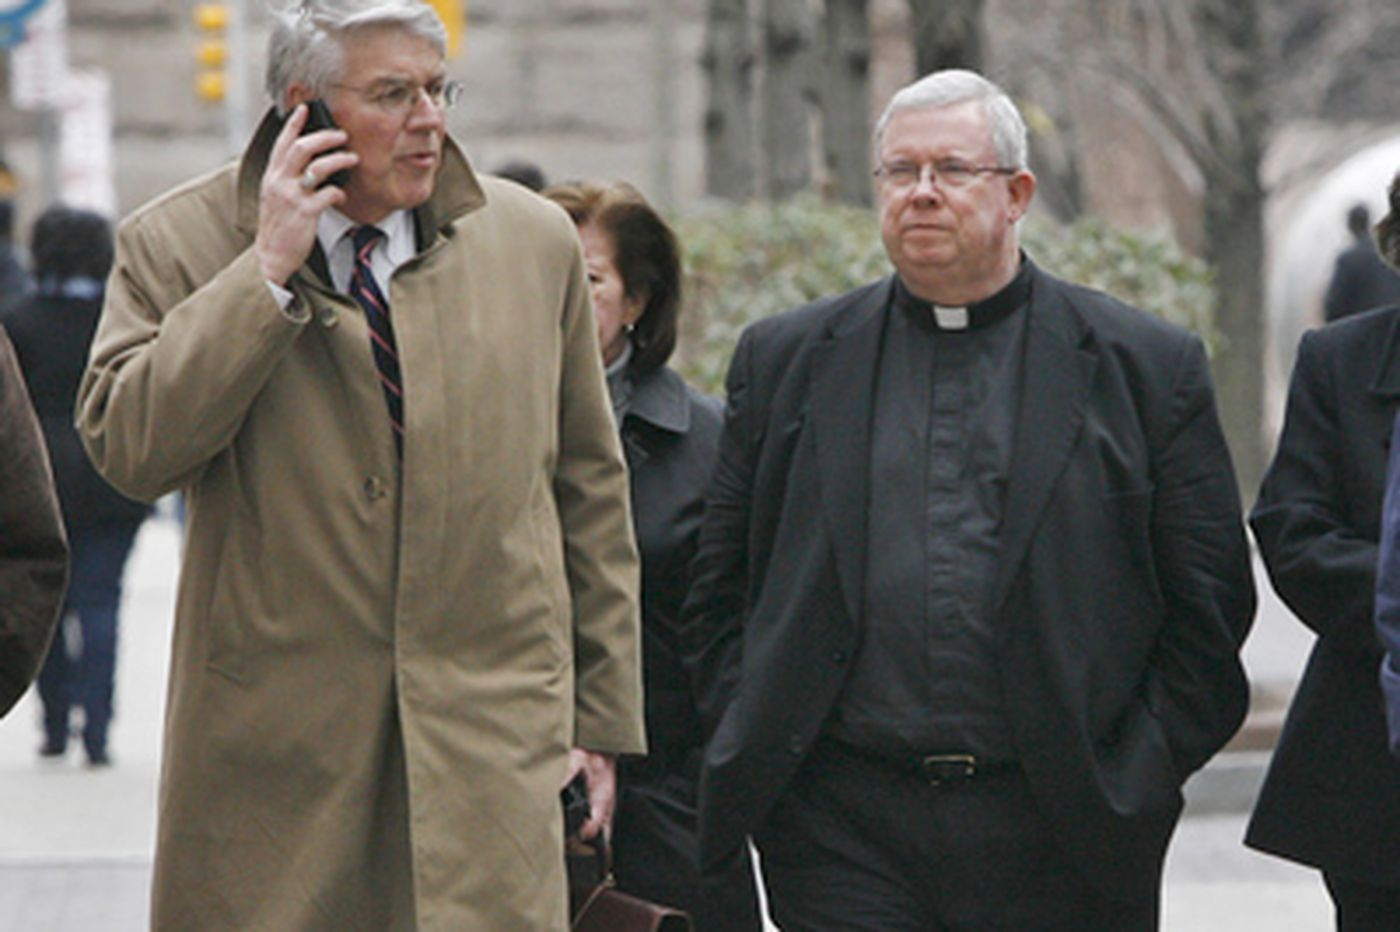 Priest's lawyers: Dismiss endangerment charge